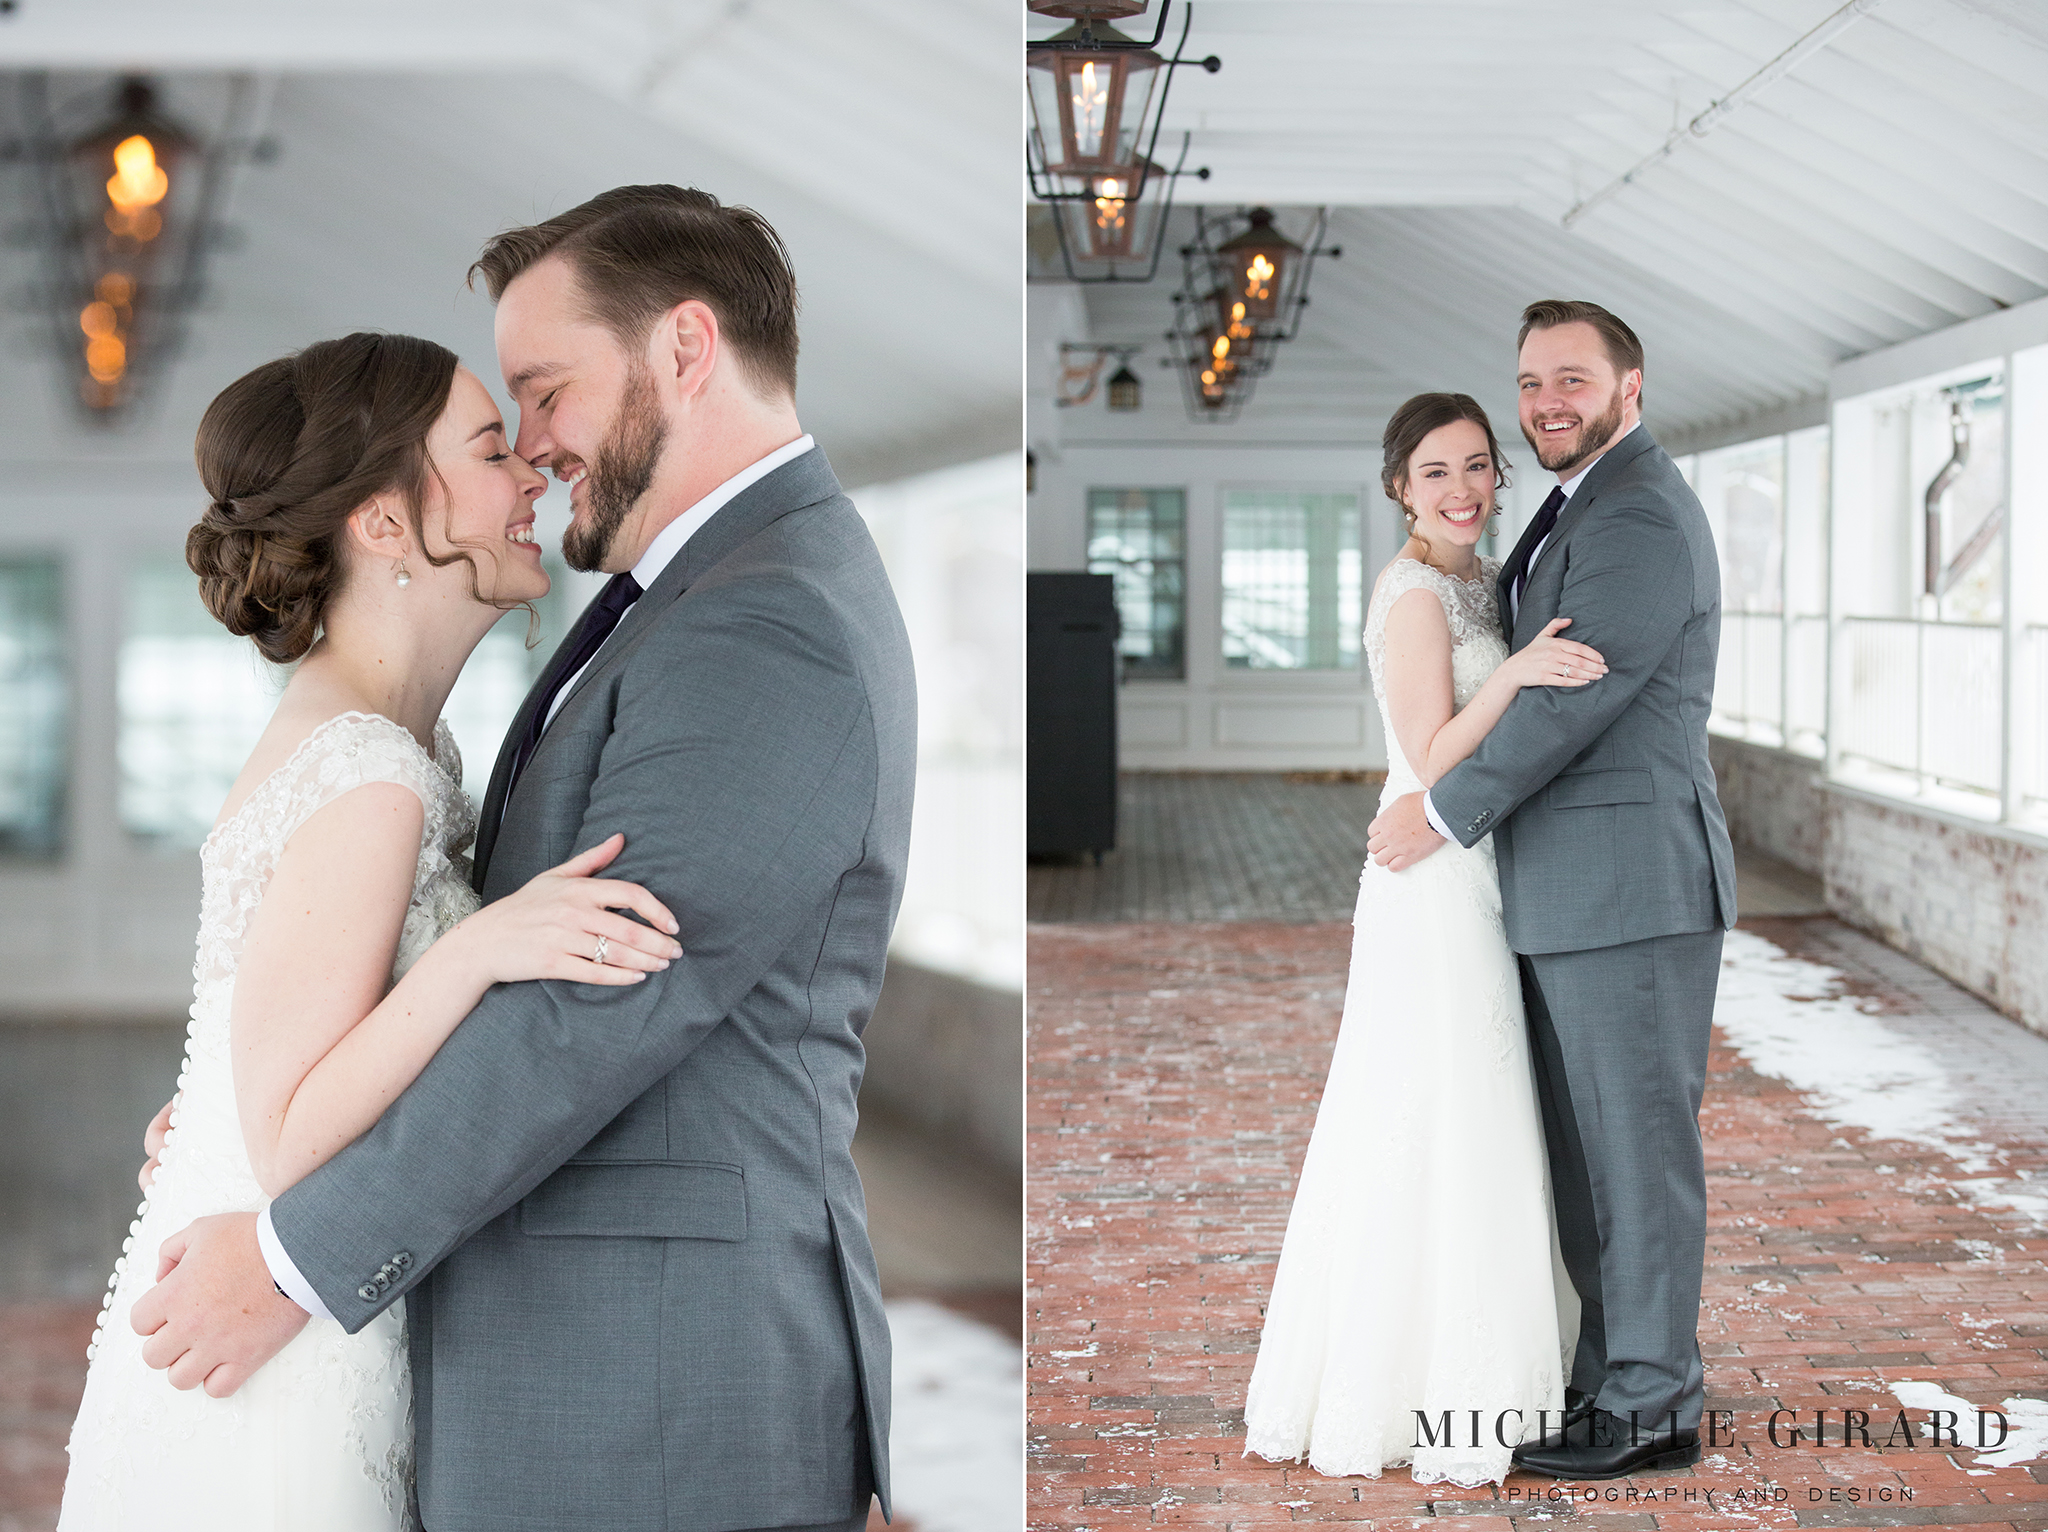 WinterWedding_AmherstMA_LordJefferyInn_MichelleGirardPhotography01.jpg